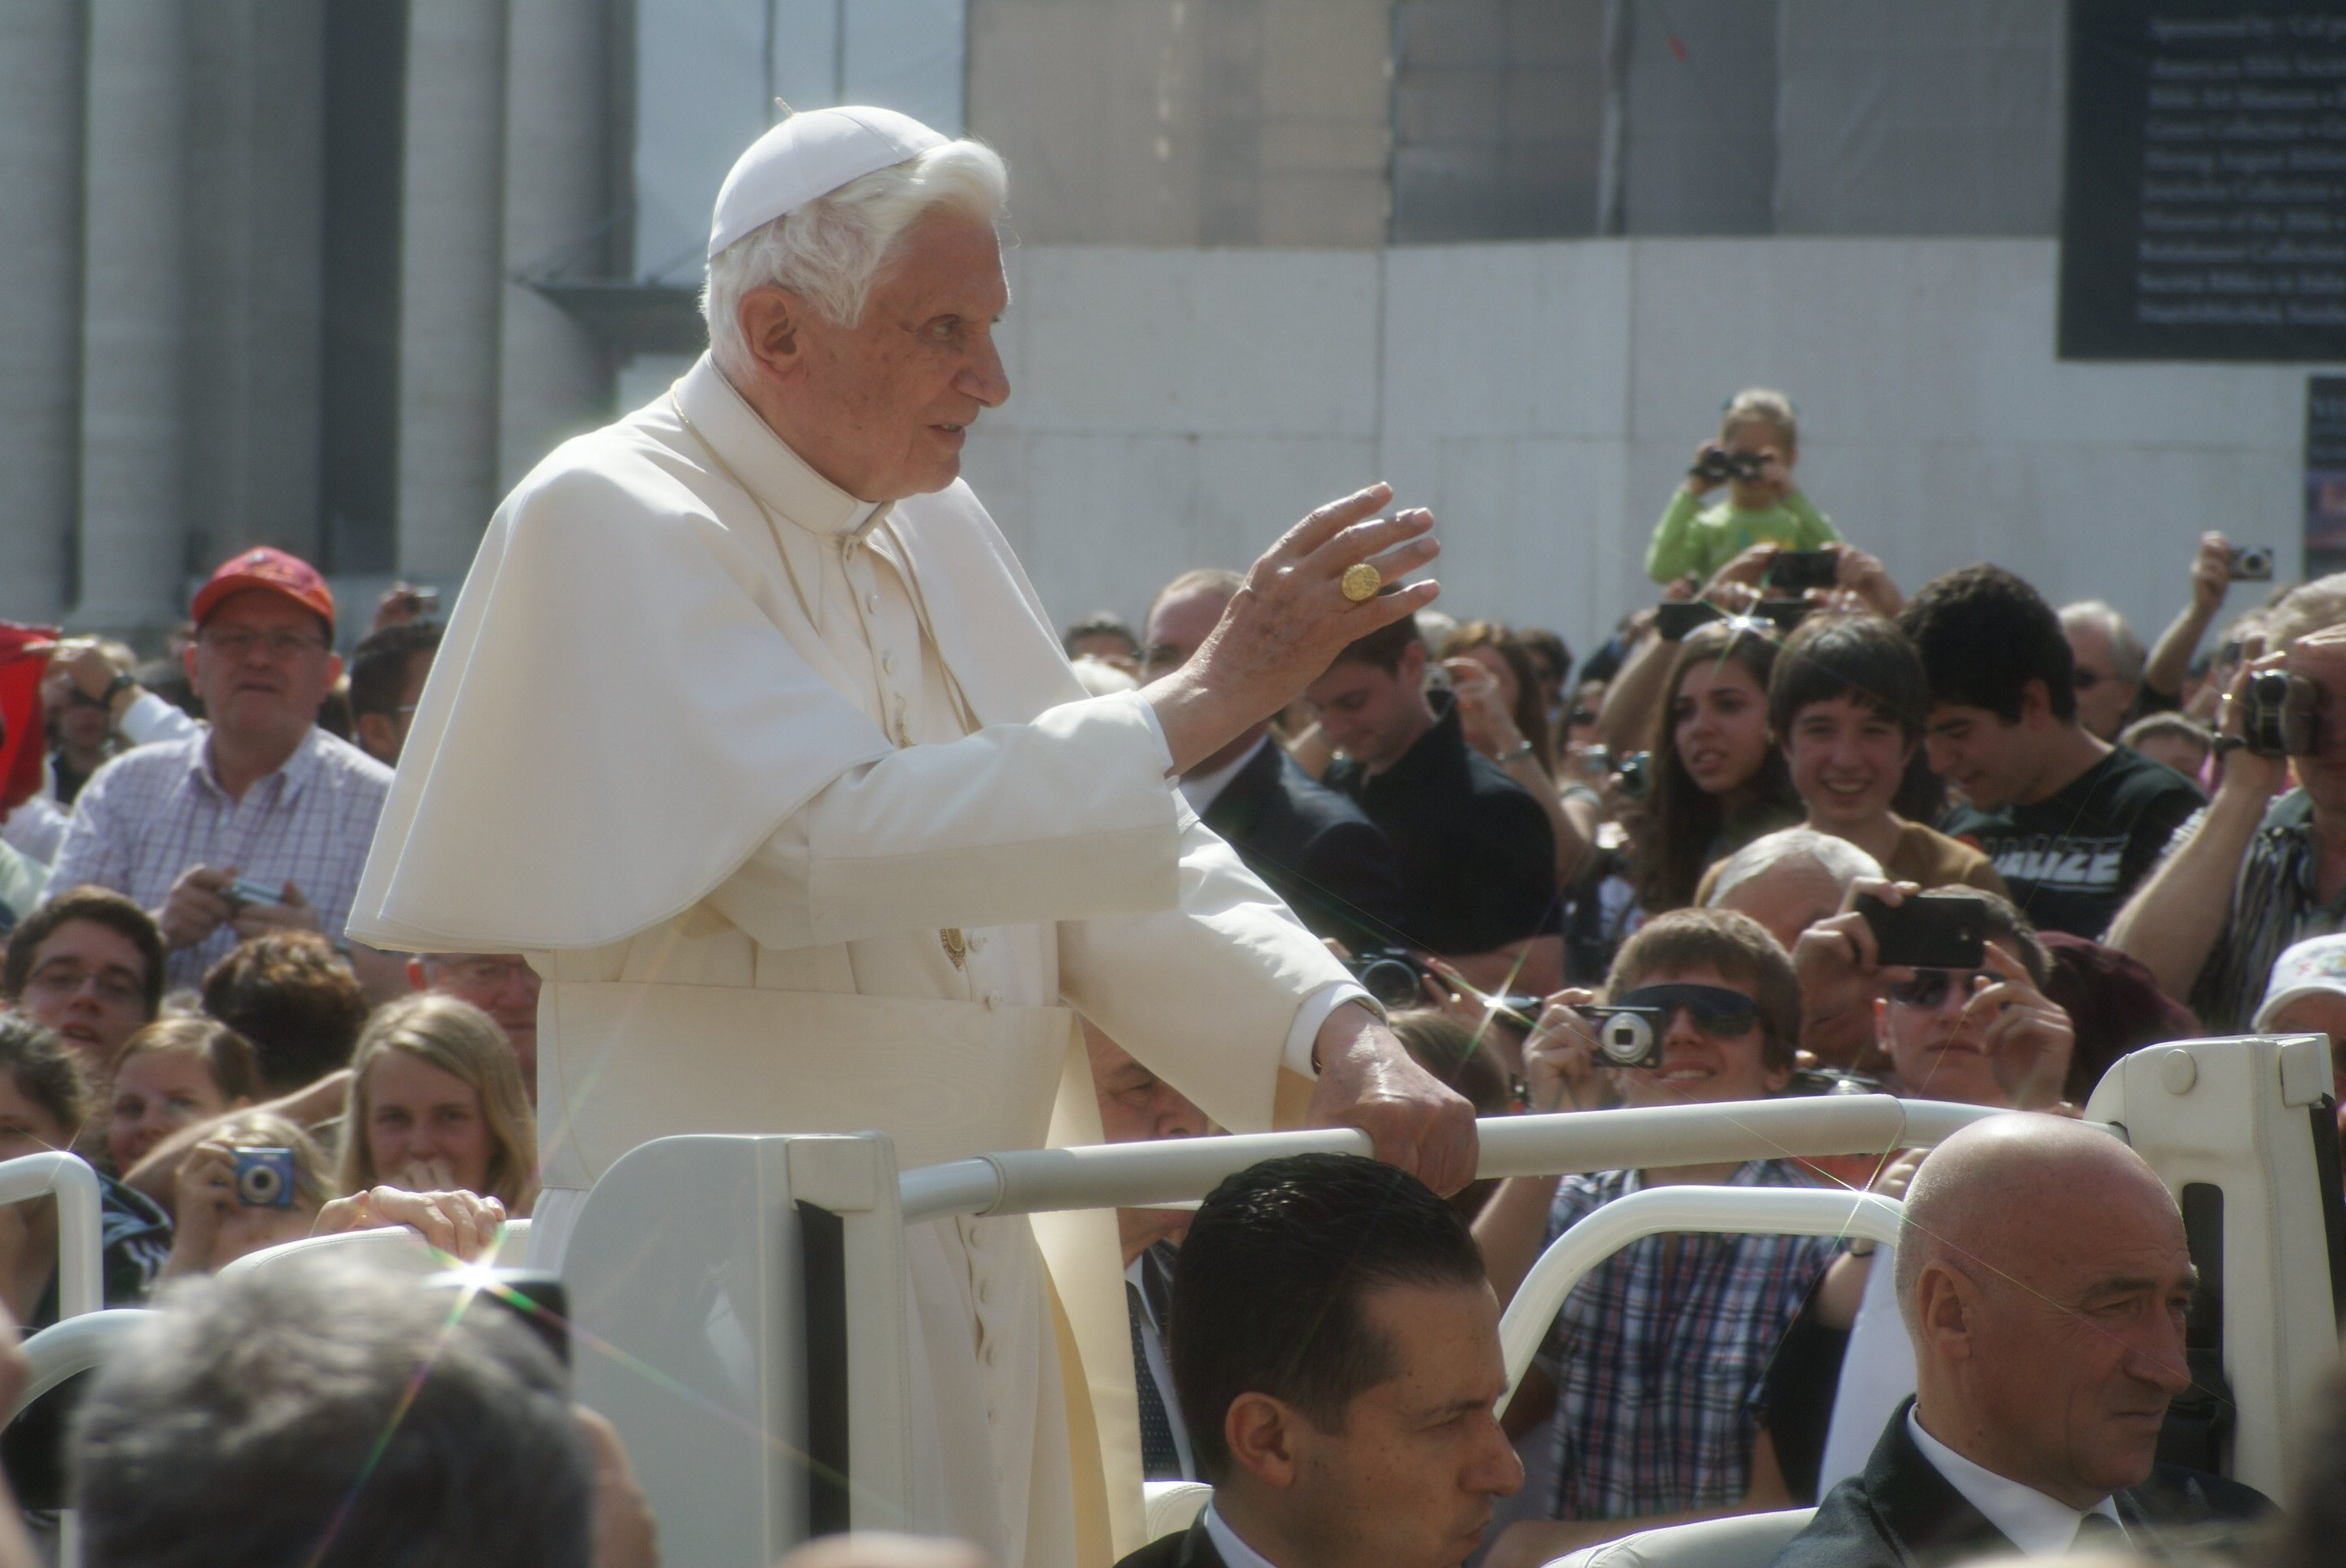 Pope Benedict XVI in Rome, Italy during an outdoor service